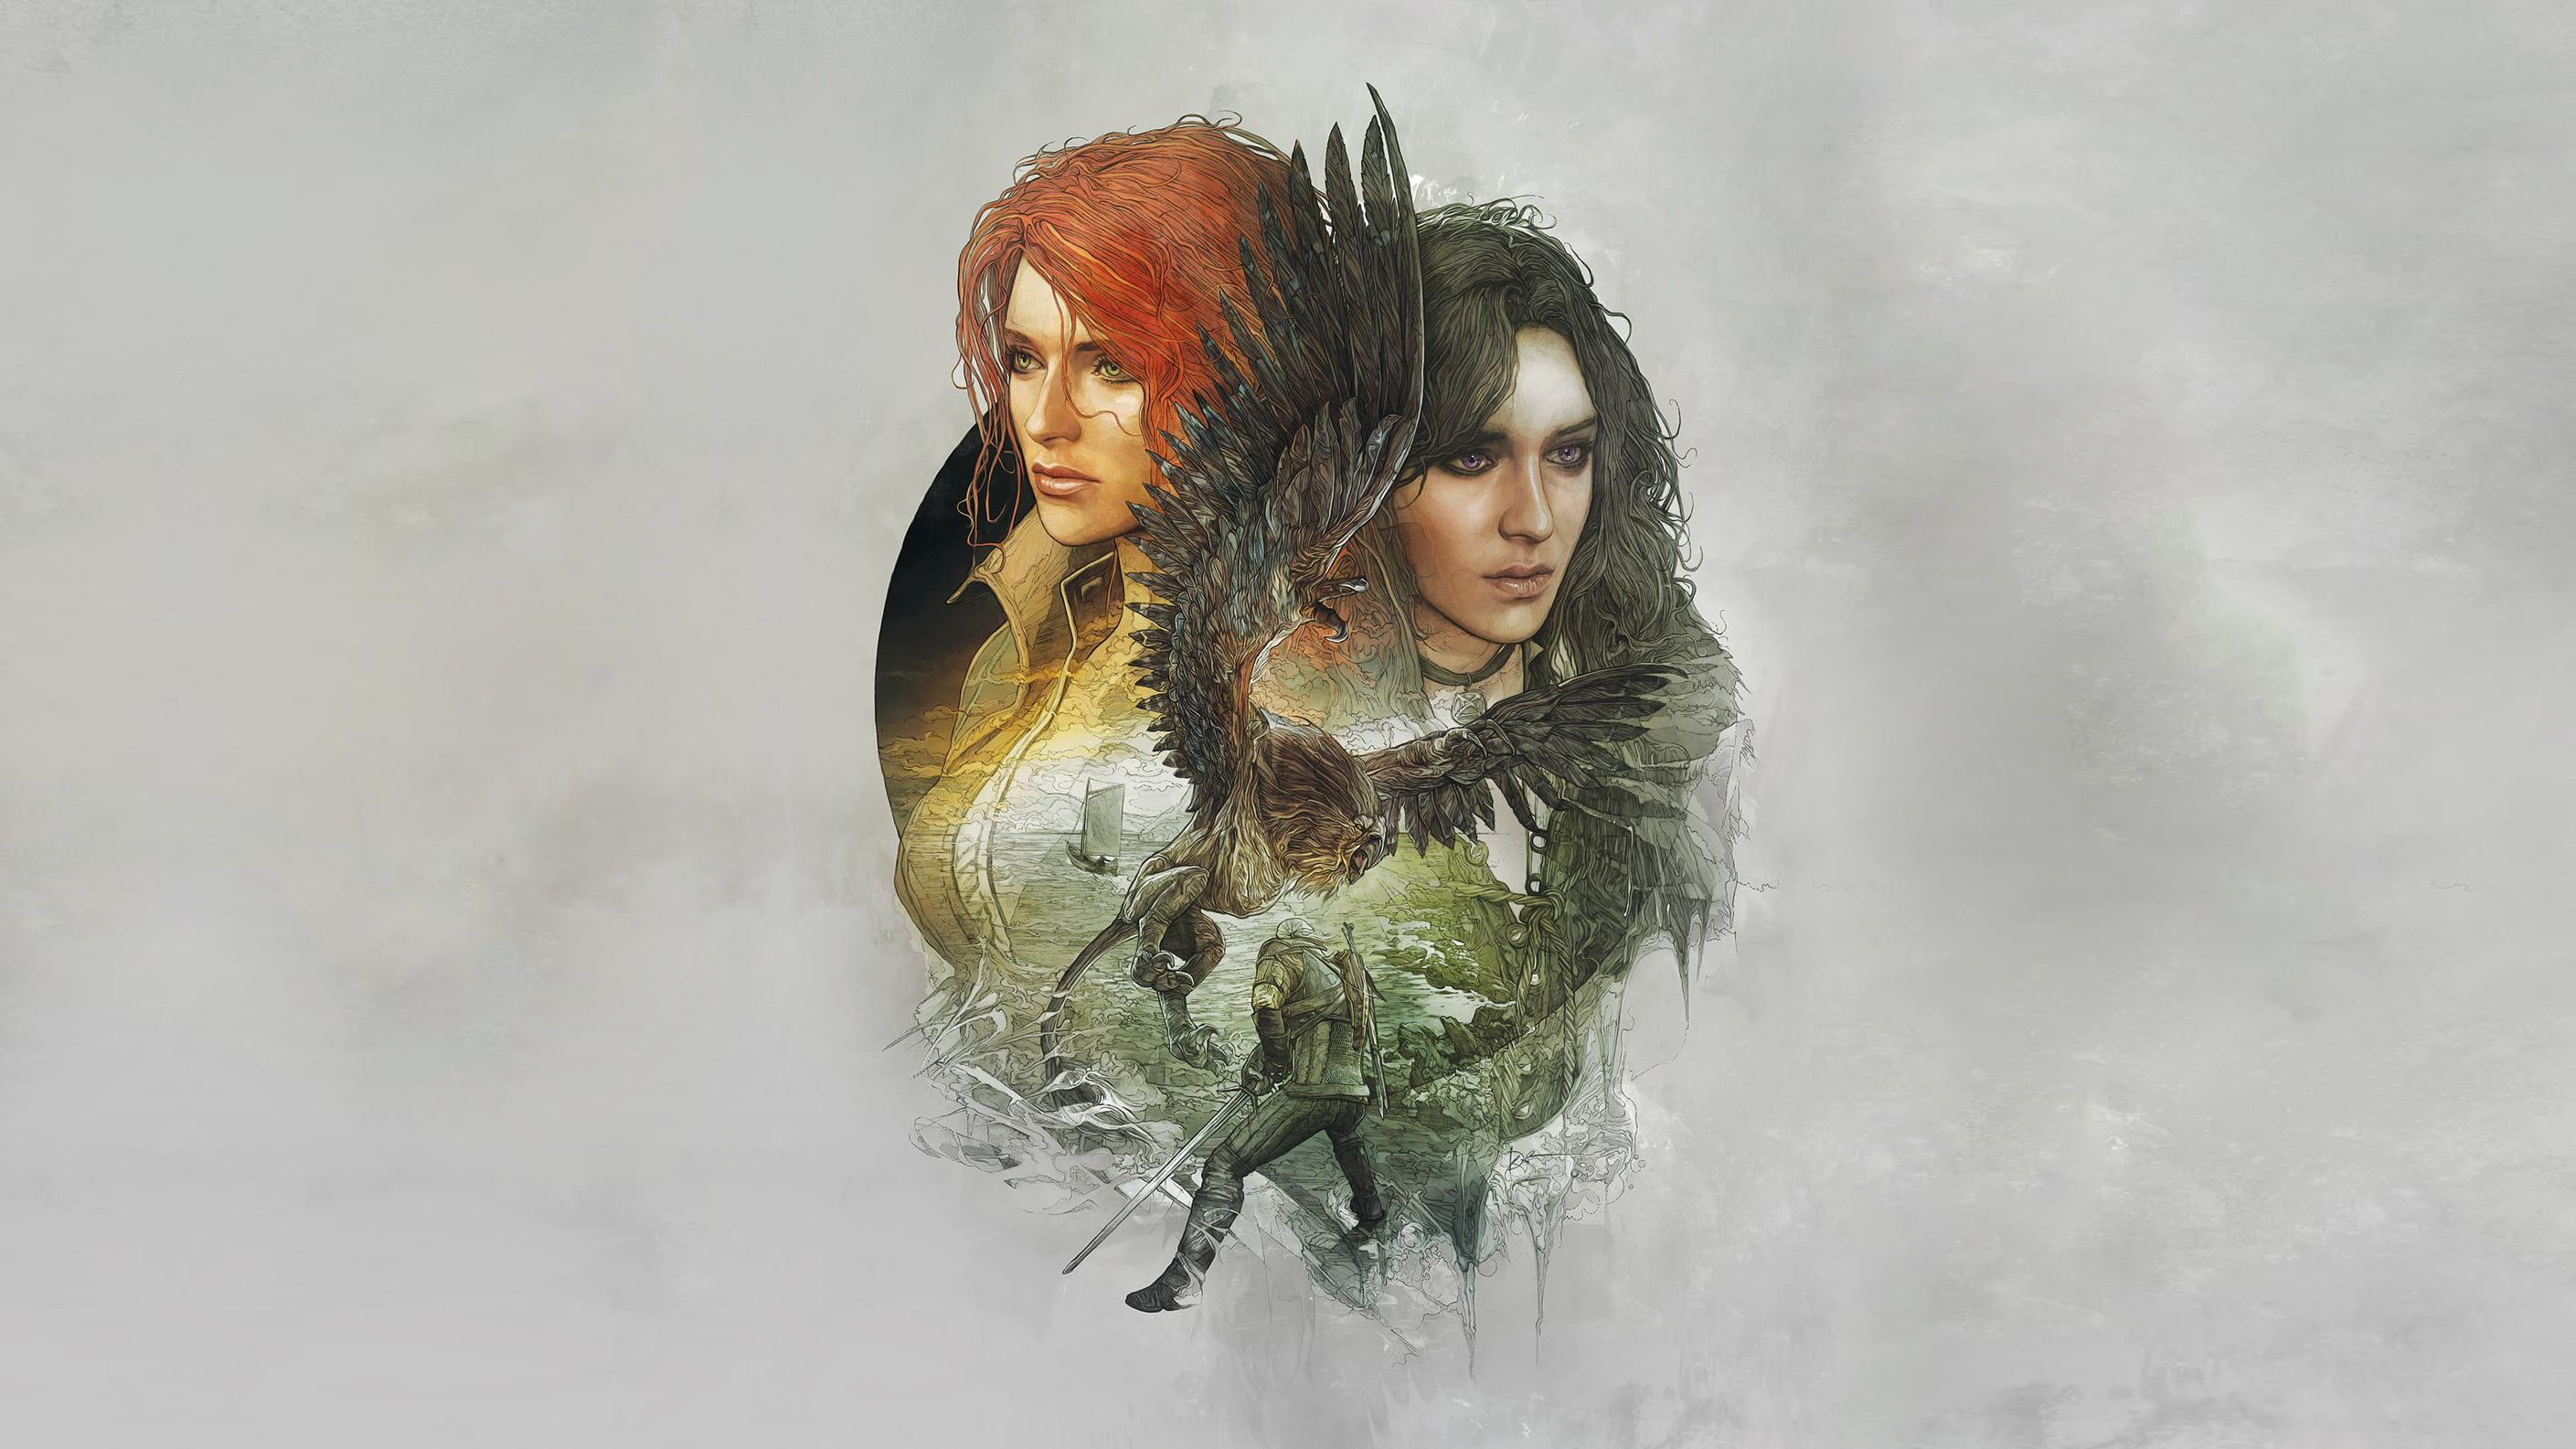 Witcher 3 Yennefer And Triss Wallpaper The Witcher The Witcher 3 Wild Hunt Geralt Of Rivia Triss Merigold Yennefer Of Veng The Witcher The Witcher 3 Wild Hunt